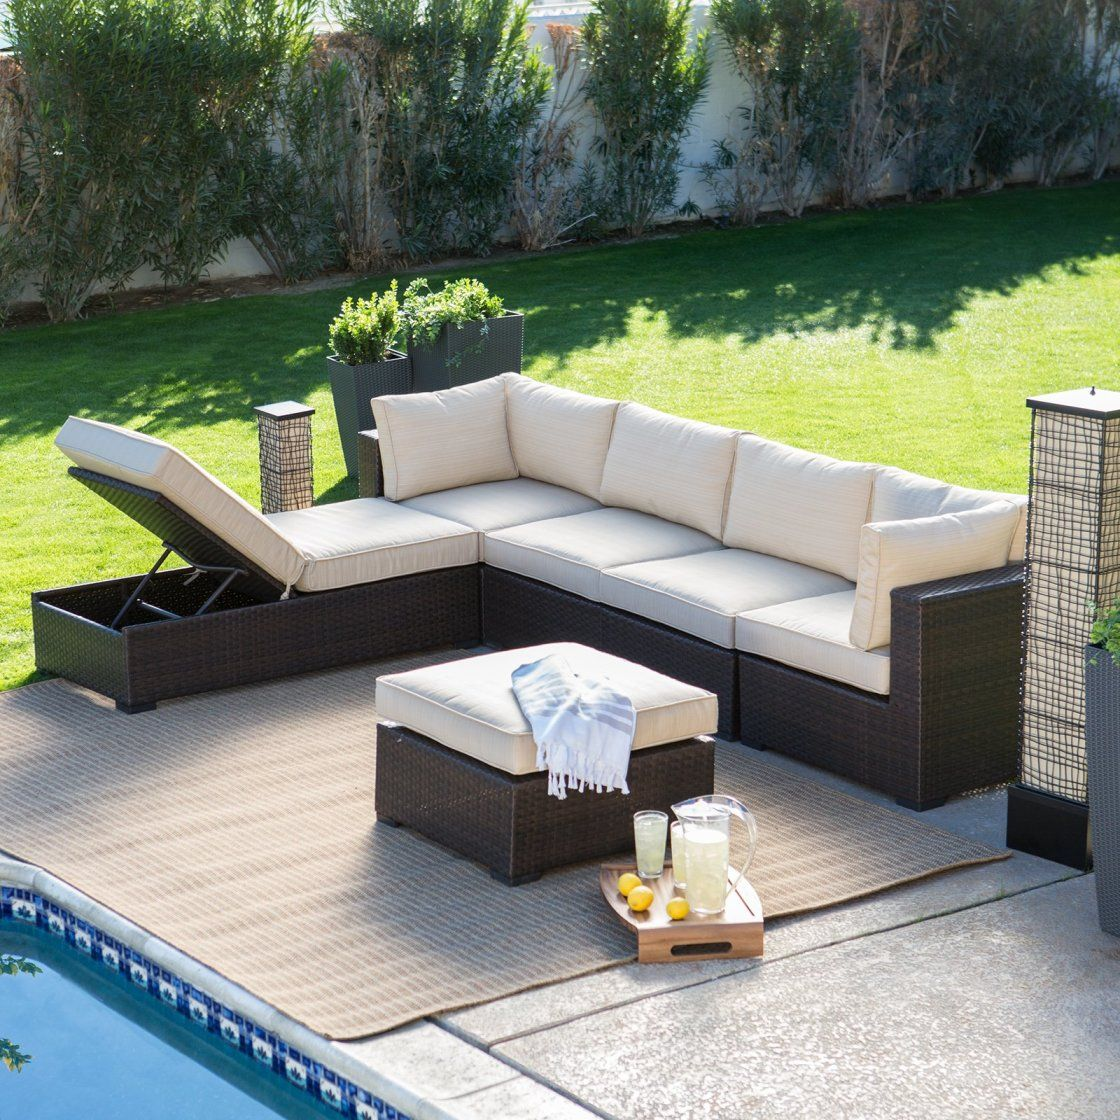 Beau Endearing Inspiring Outdoor Sectional Sofa For Edge Garden Pool Using  Synthetic Wicker Rattan L Shaped Sofa With Storage Under Cream Fabric Foam  Boxed Seat ...